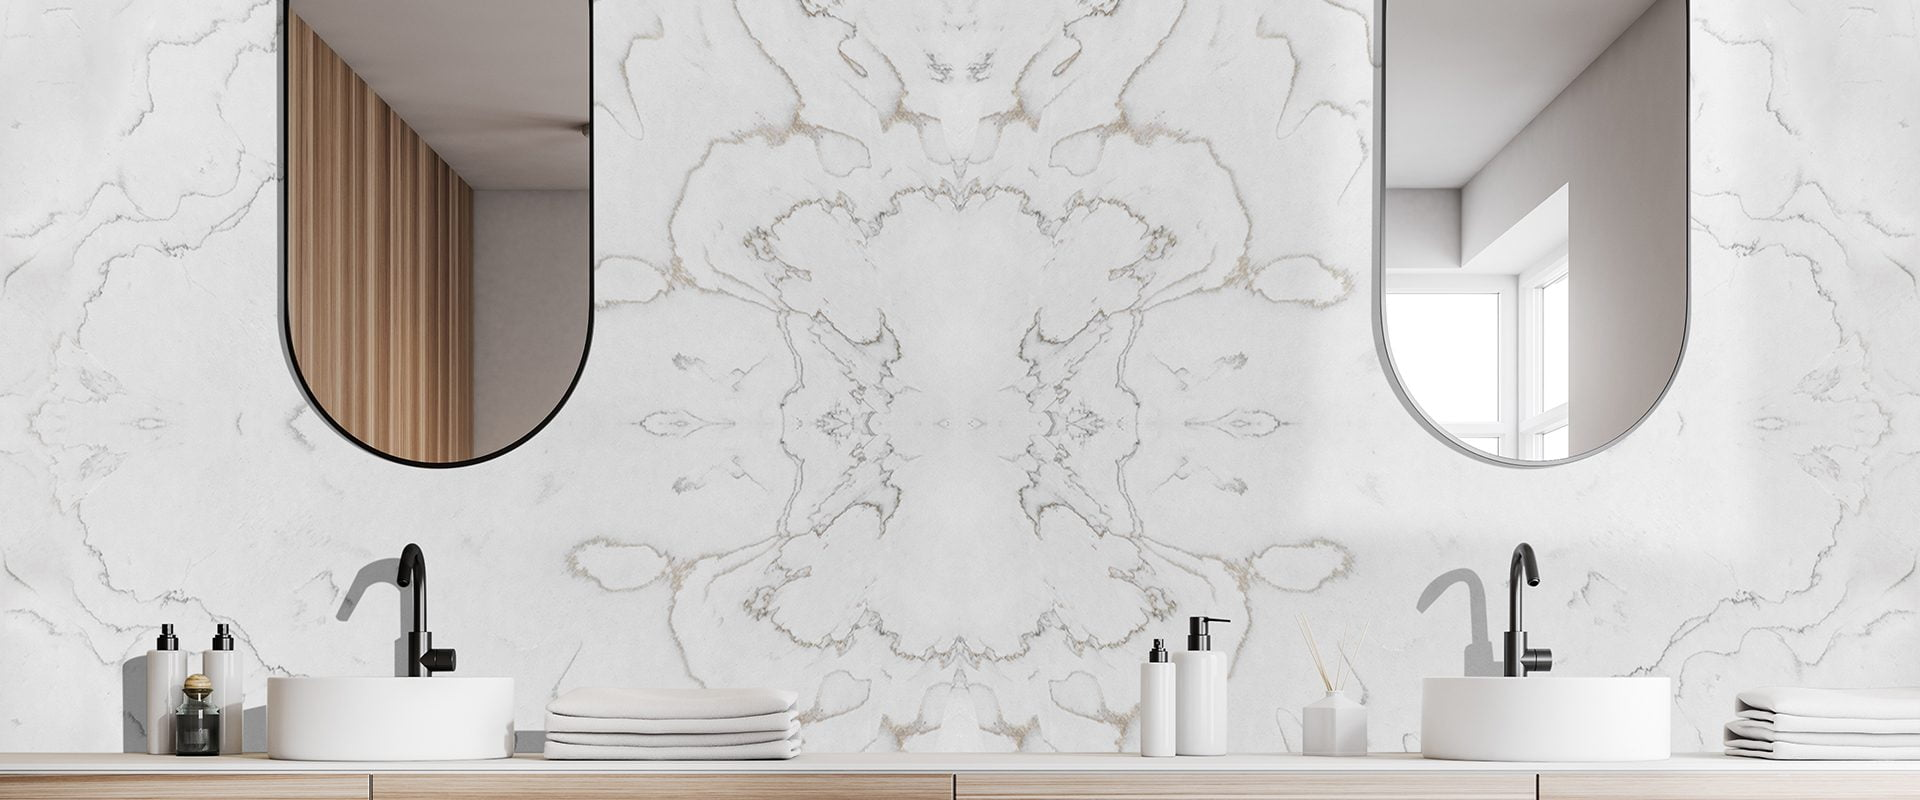 Close up of double bathroom sink standing on wooden countertop in room with white walls and oblong mirrors. 3d rendering